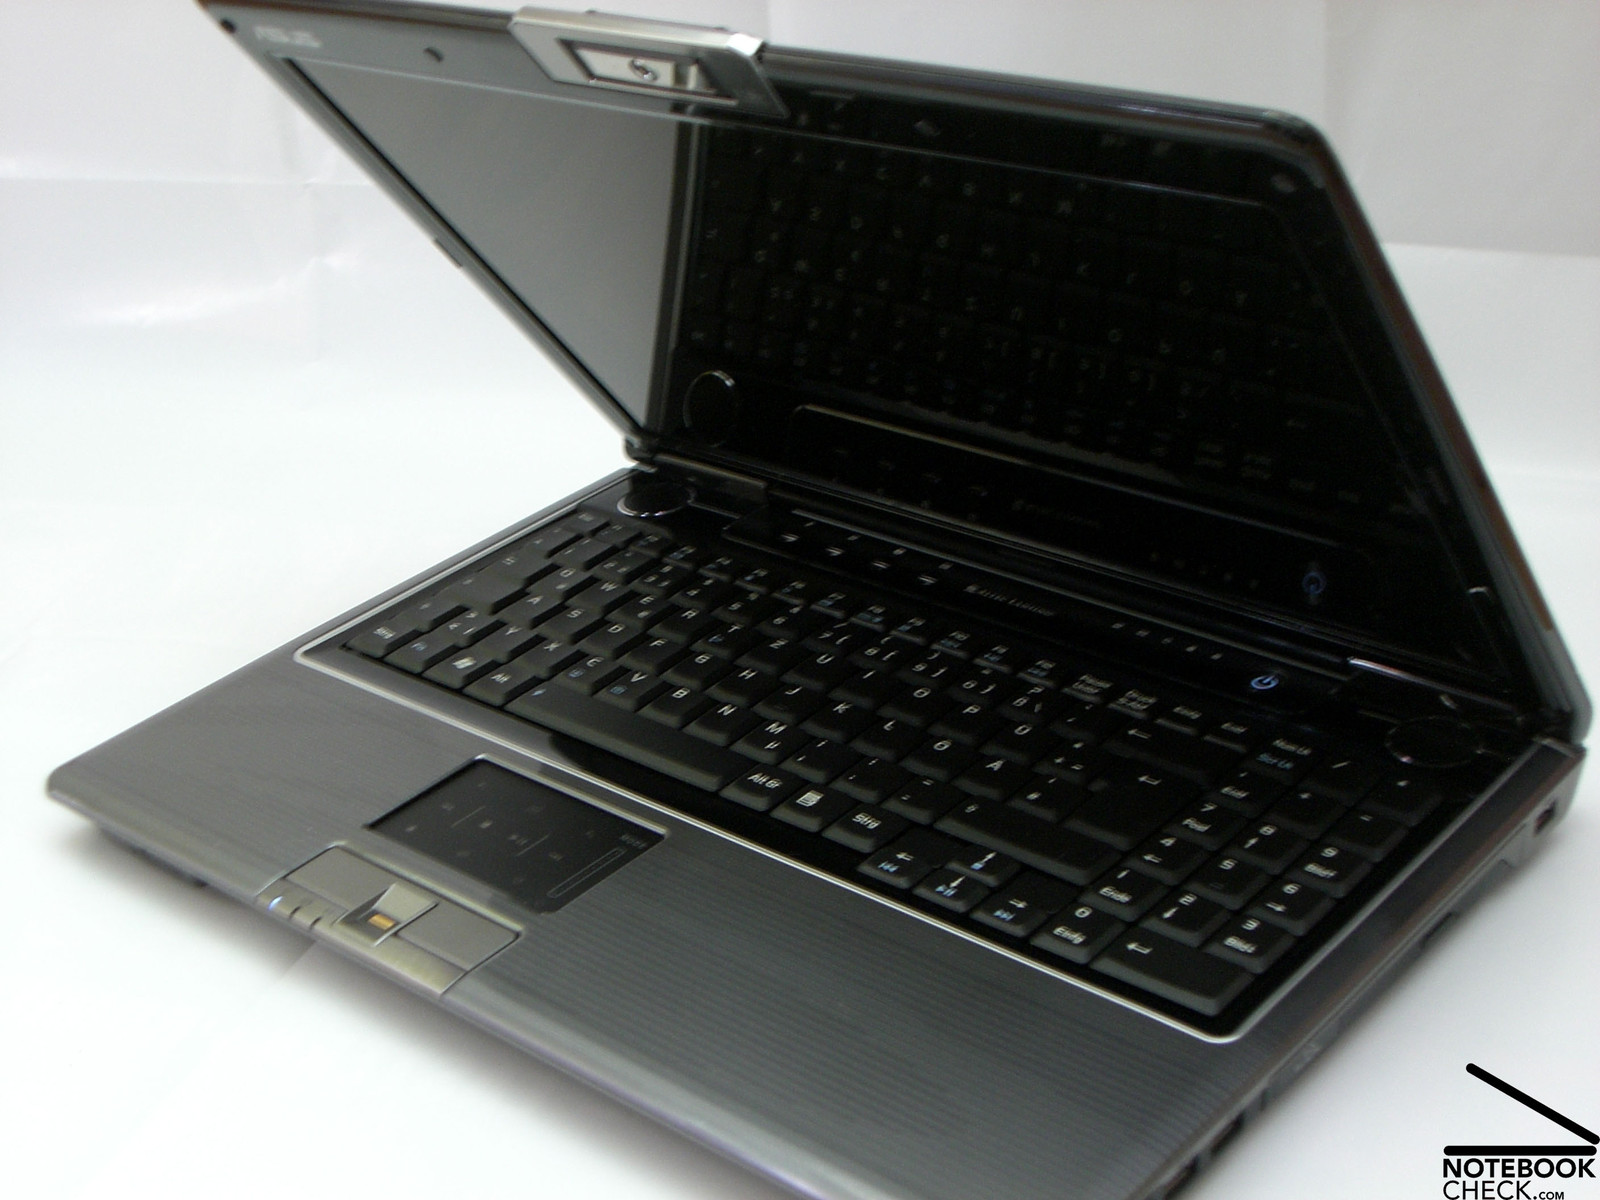 Asus M50Sv Notebook Marvell LAN Windows 8 X64